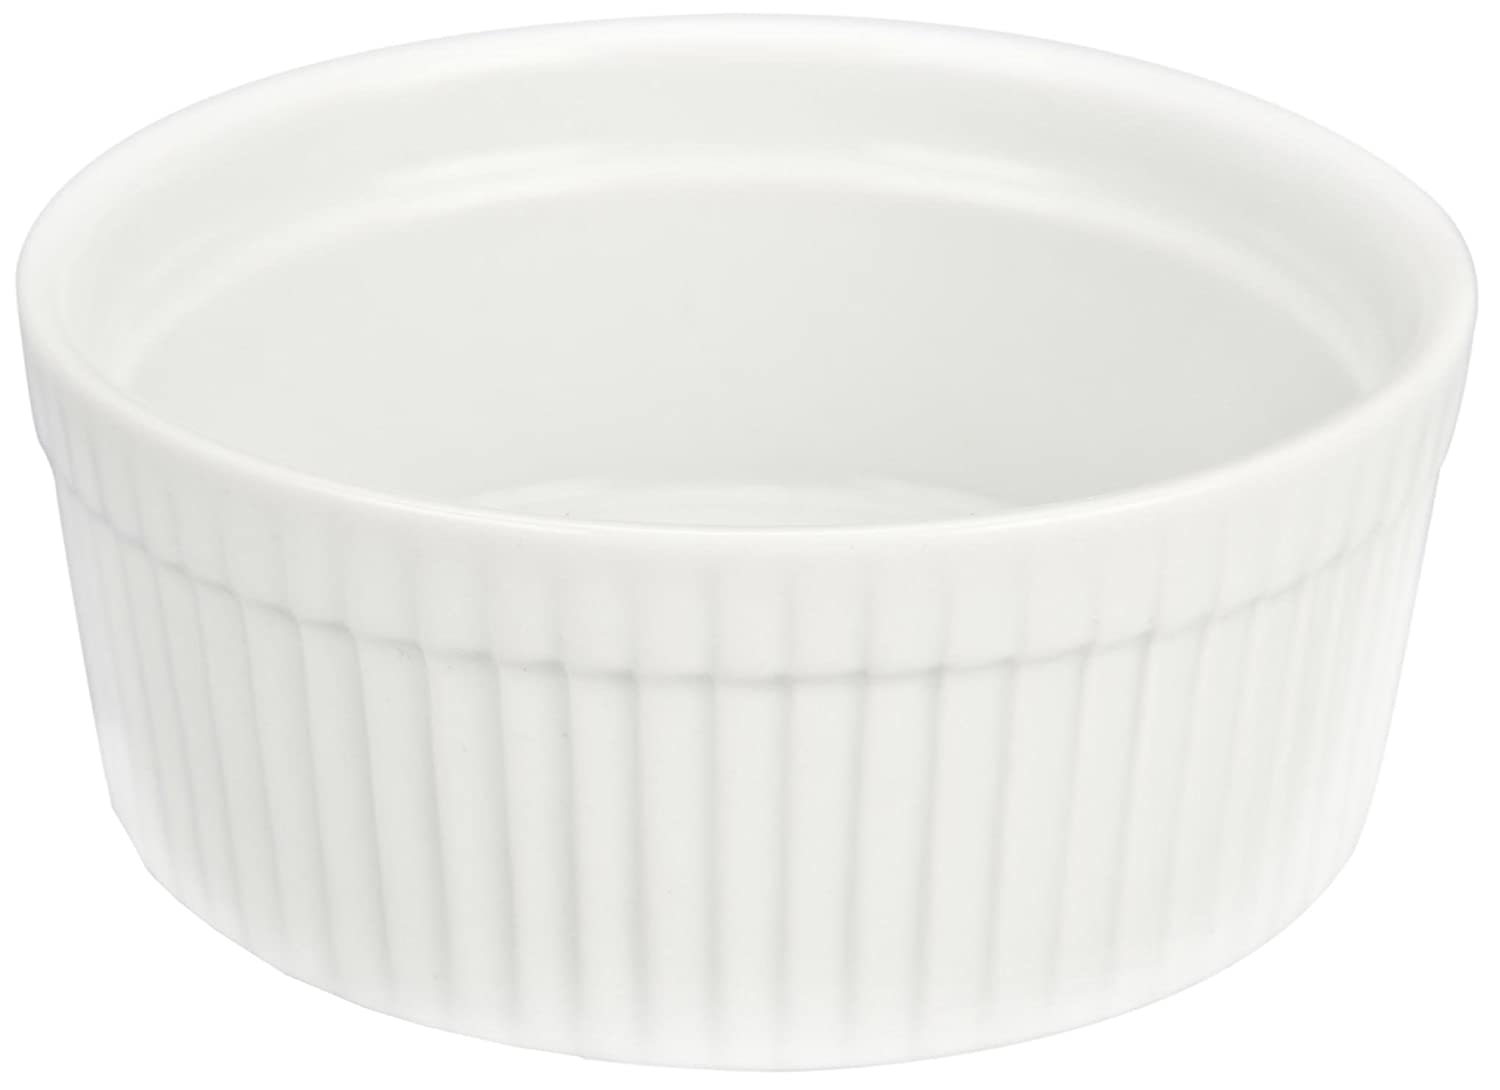 Bia Cordon Bleu White Porcelain 10-Ounce Individual Souffle, Set of 4 900013S4